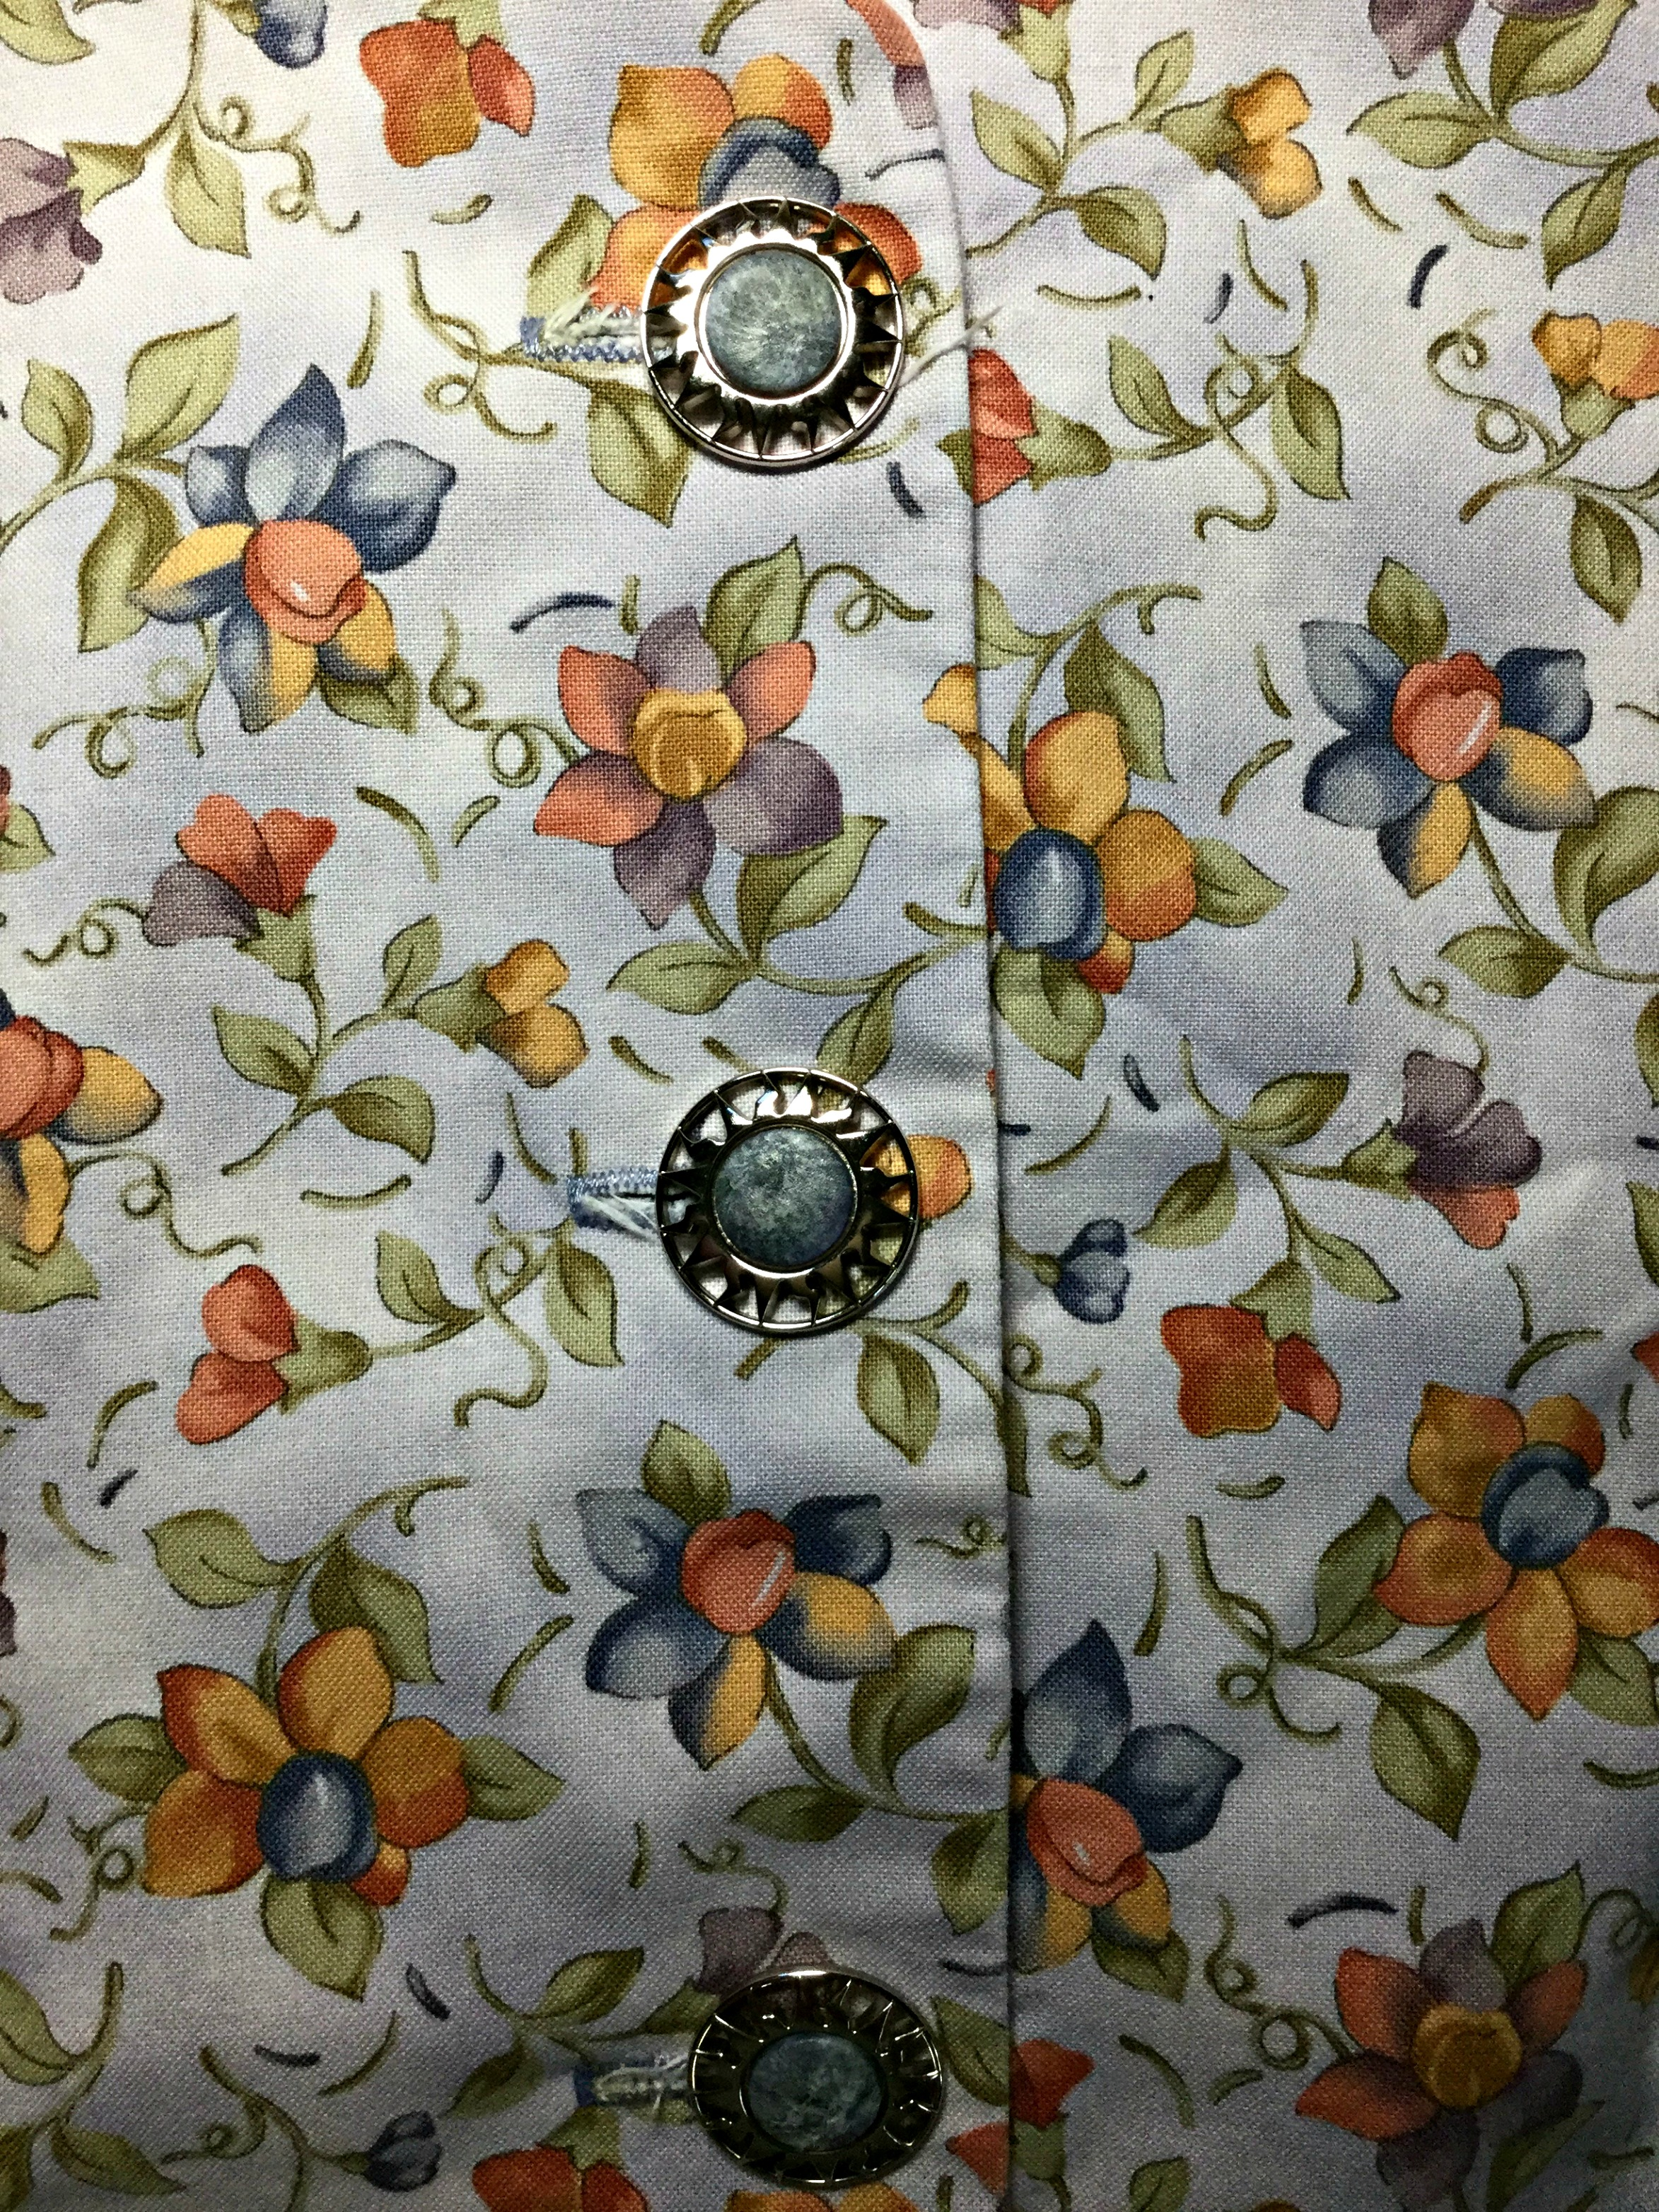 Ways To Use Buttons. Find buttons that compliment with the theme of your fabric.